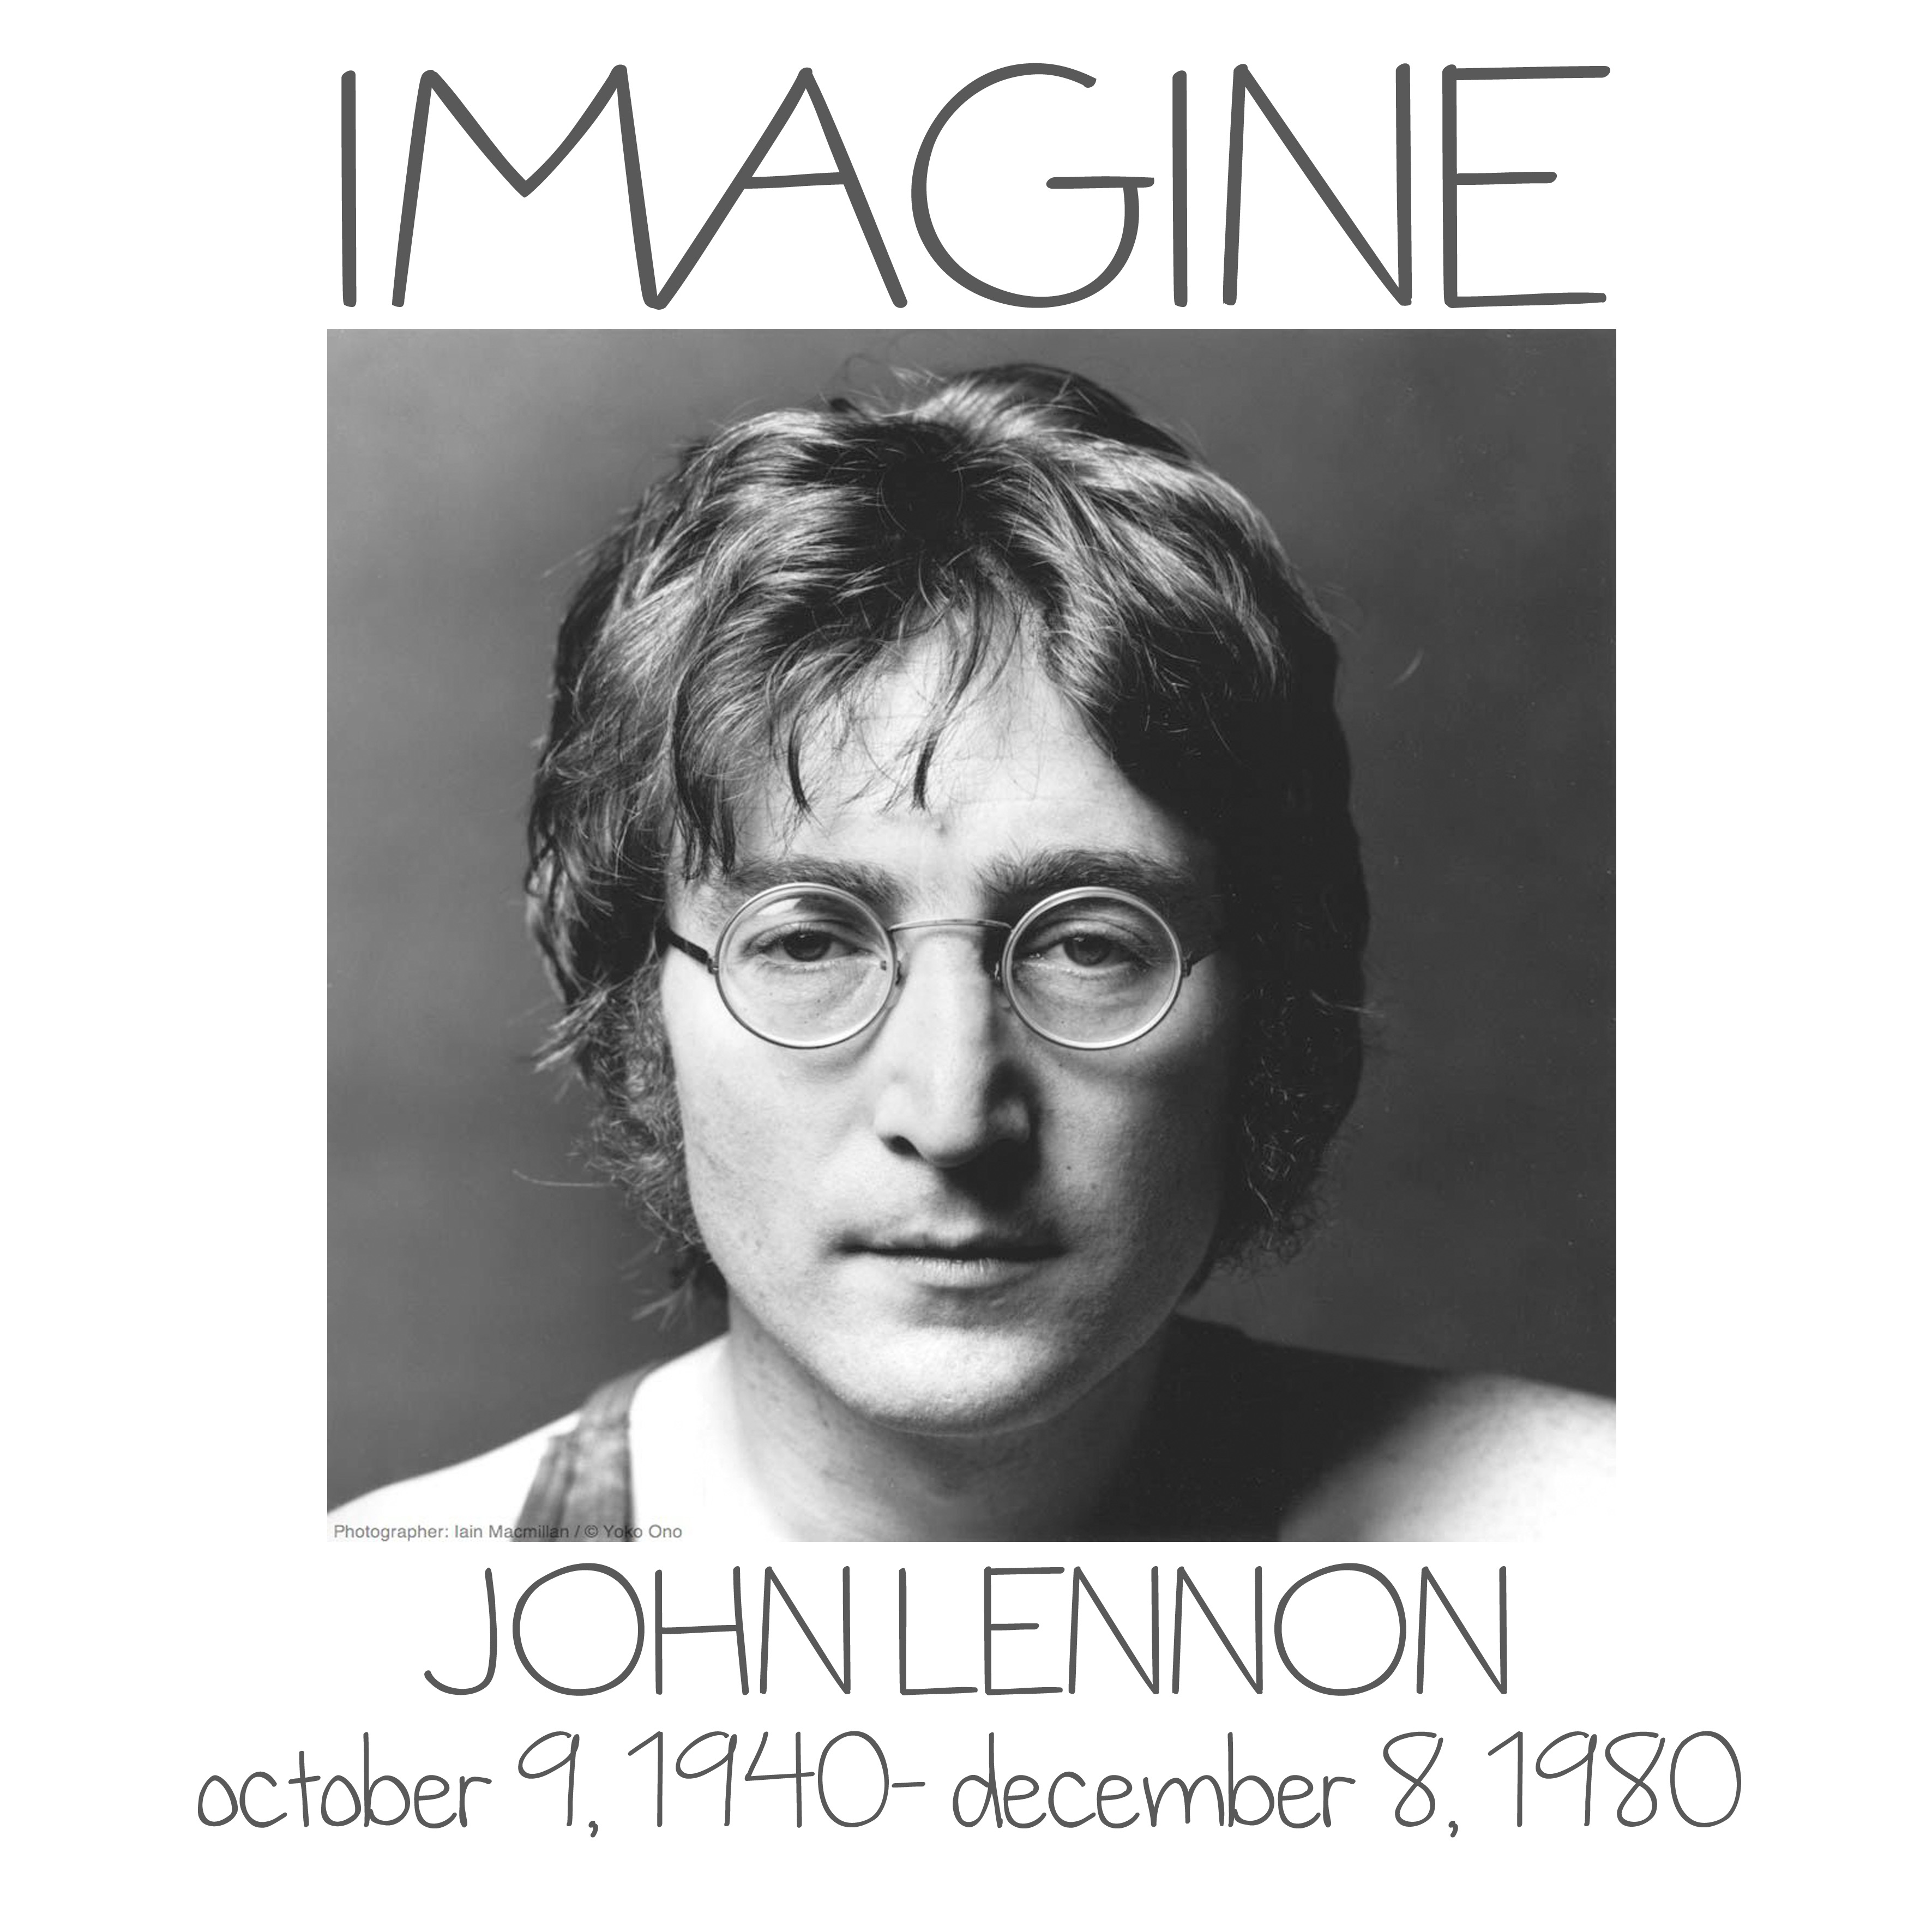 the life and career of john lennon In her life after john, cynthia lennon didn't stop loving him john lennon's she developed her work as a designer and julian launched his own music career.